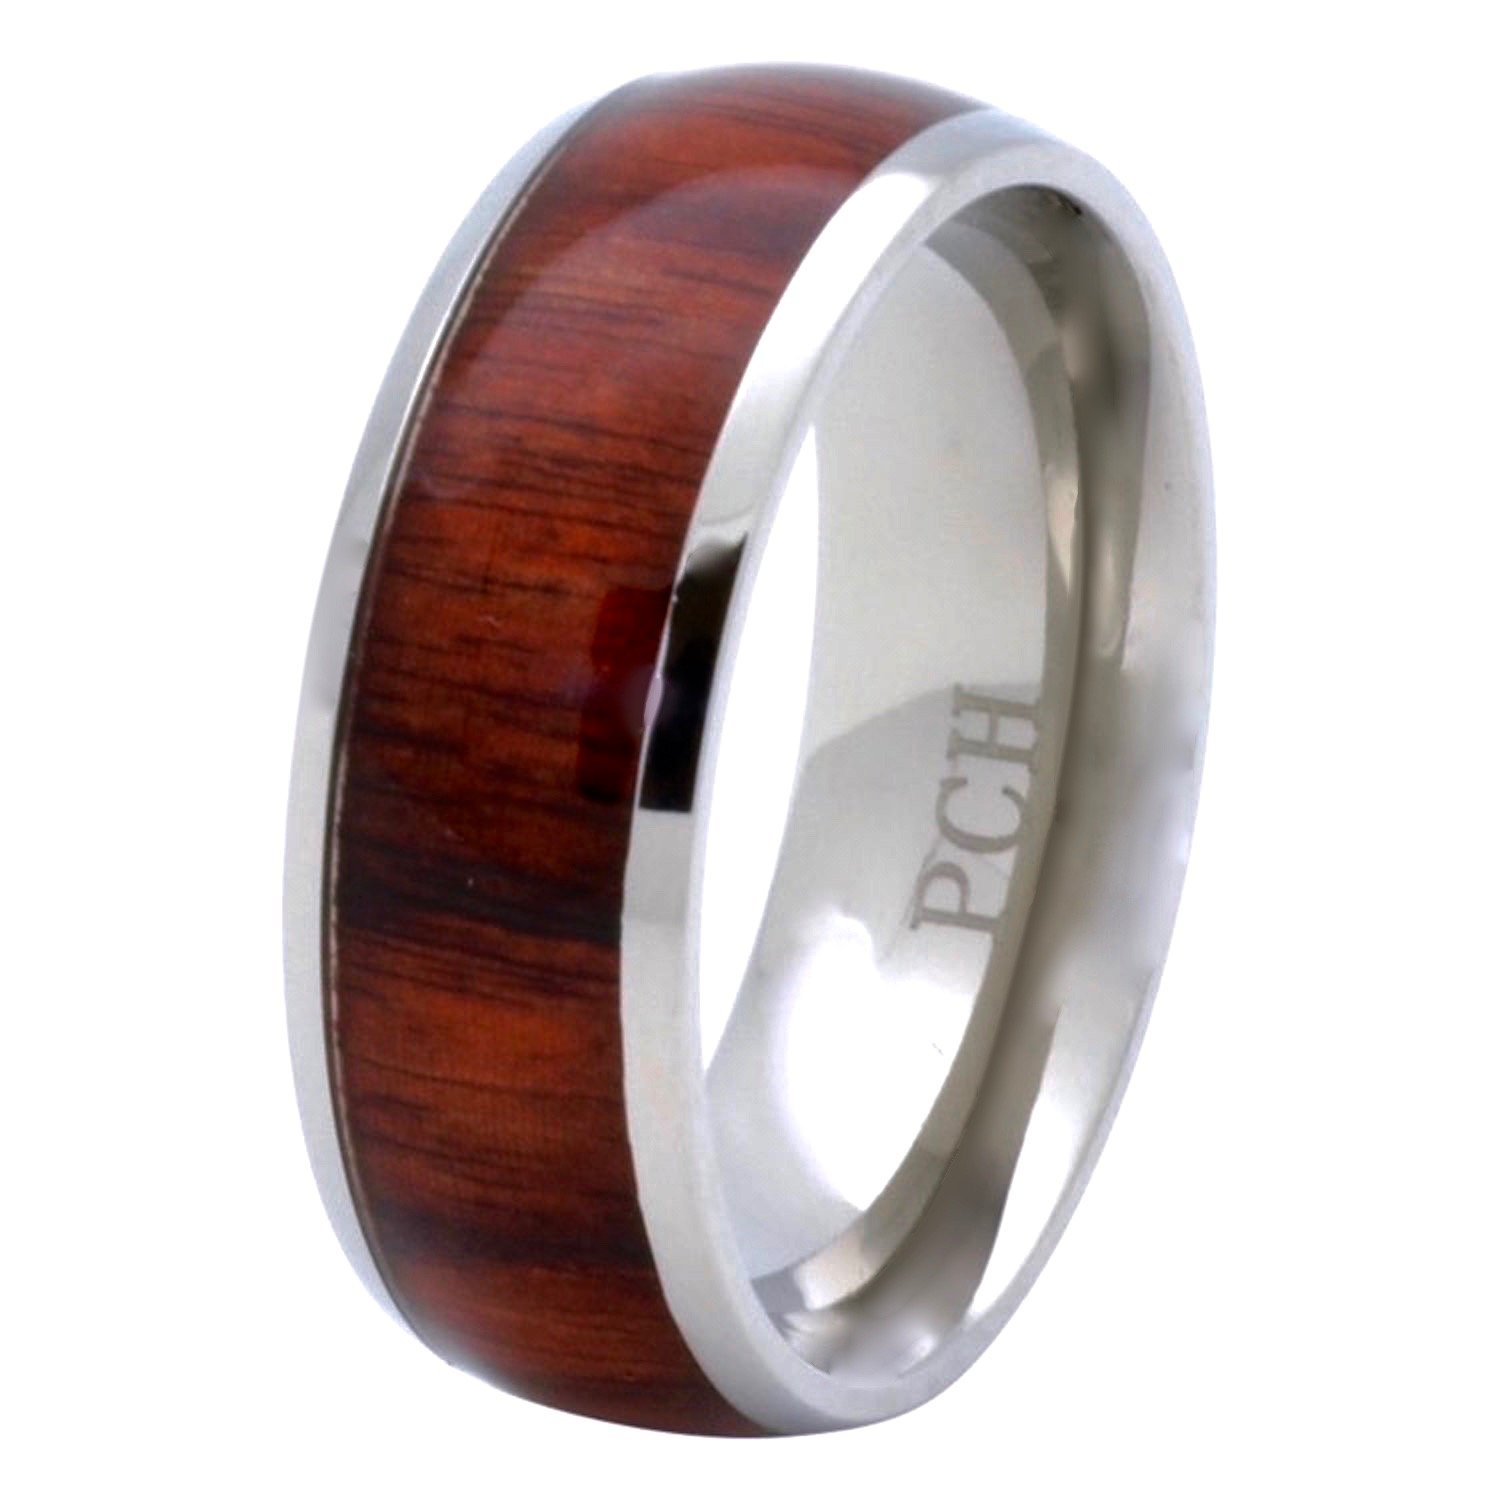 PCH Jewelers Titanium Hawaiian Koa Wood Inlay Men's Wedding Band 8mm (8)